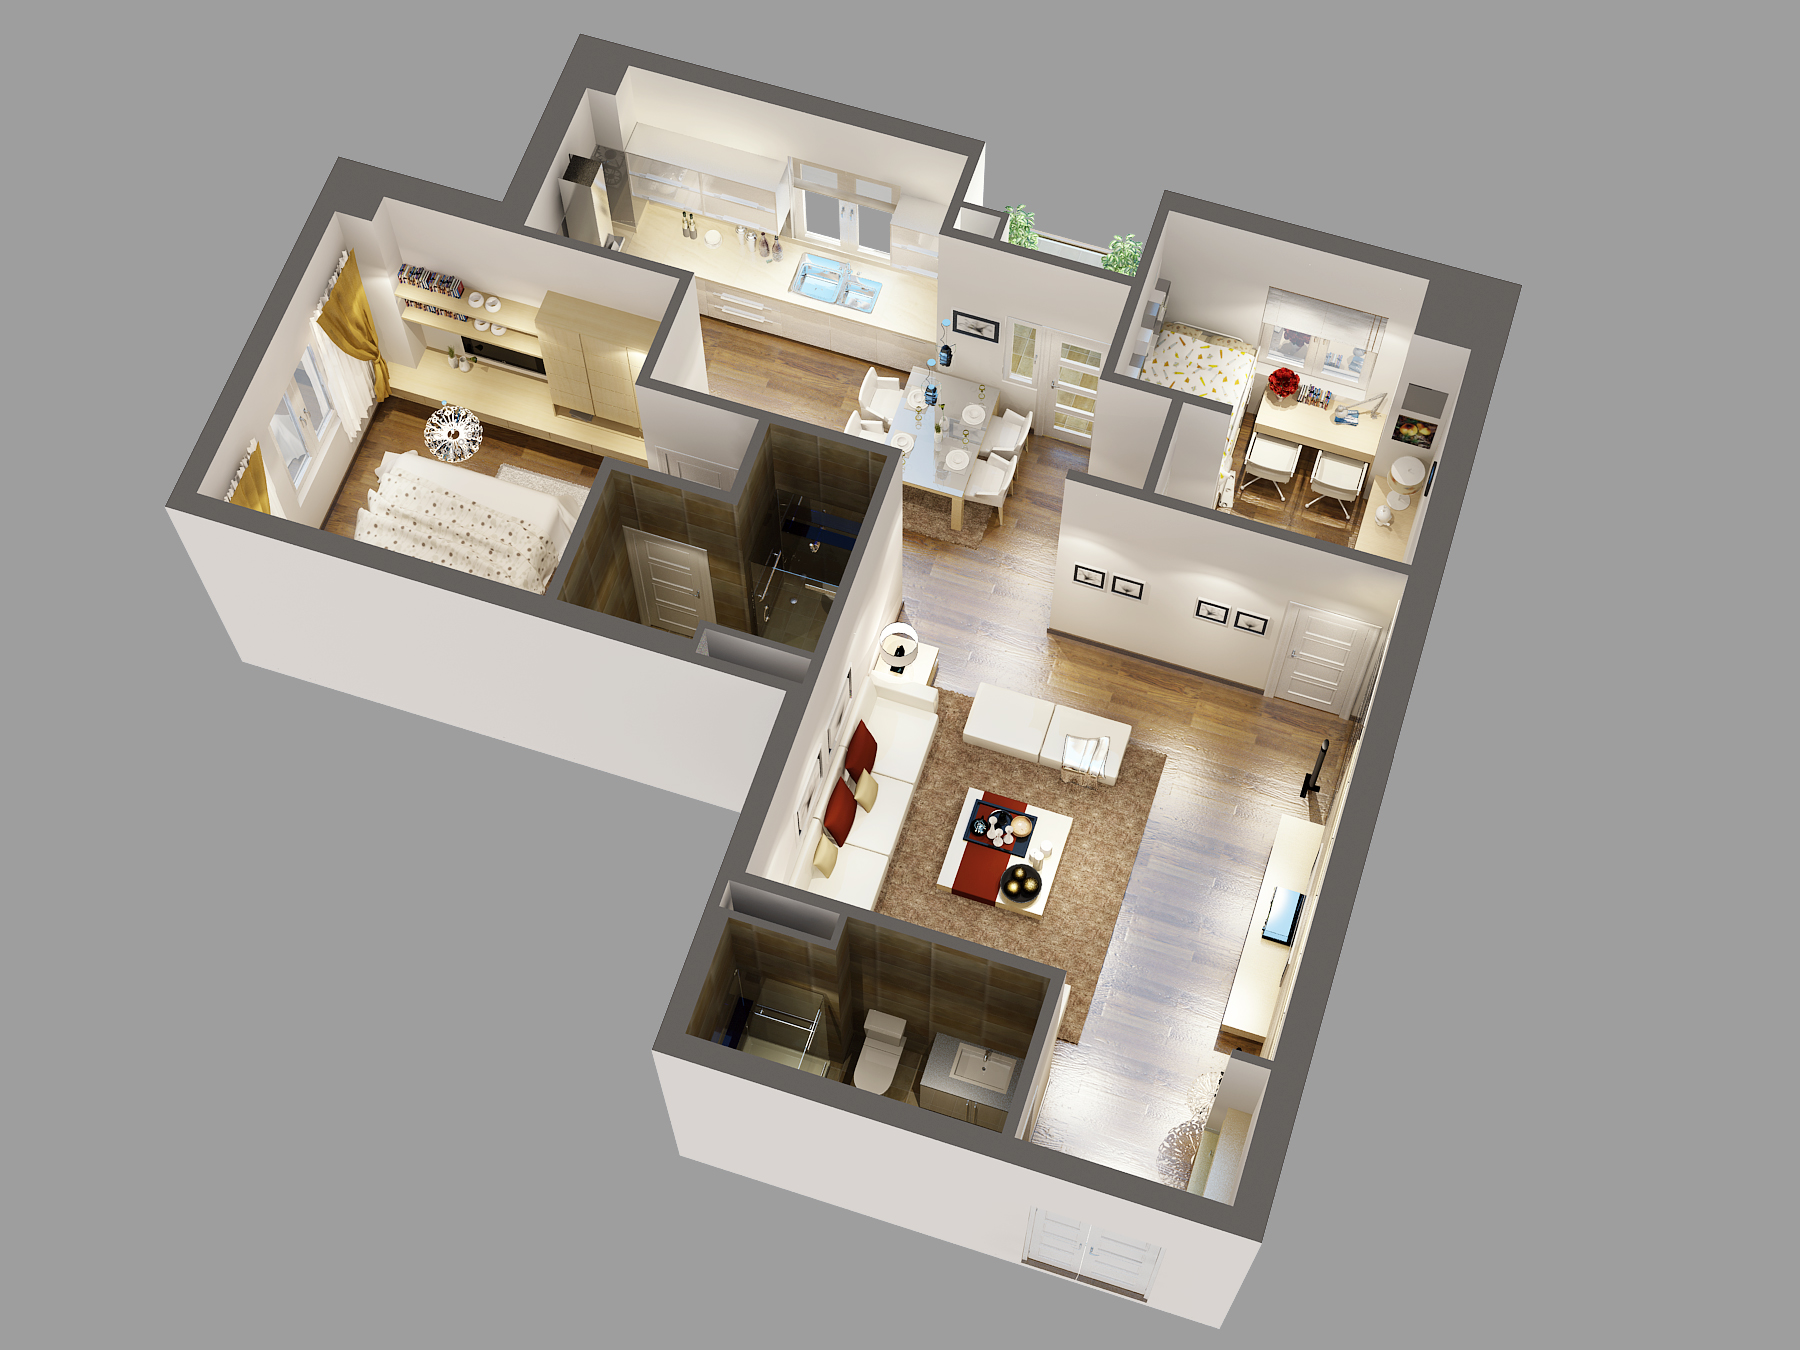 Detailed house cutaway 3d model 3d model max for 3d interior